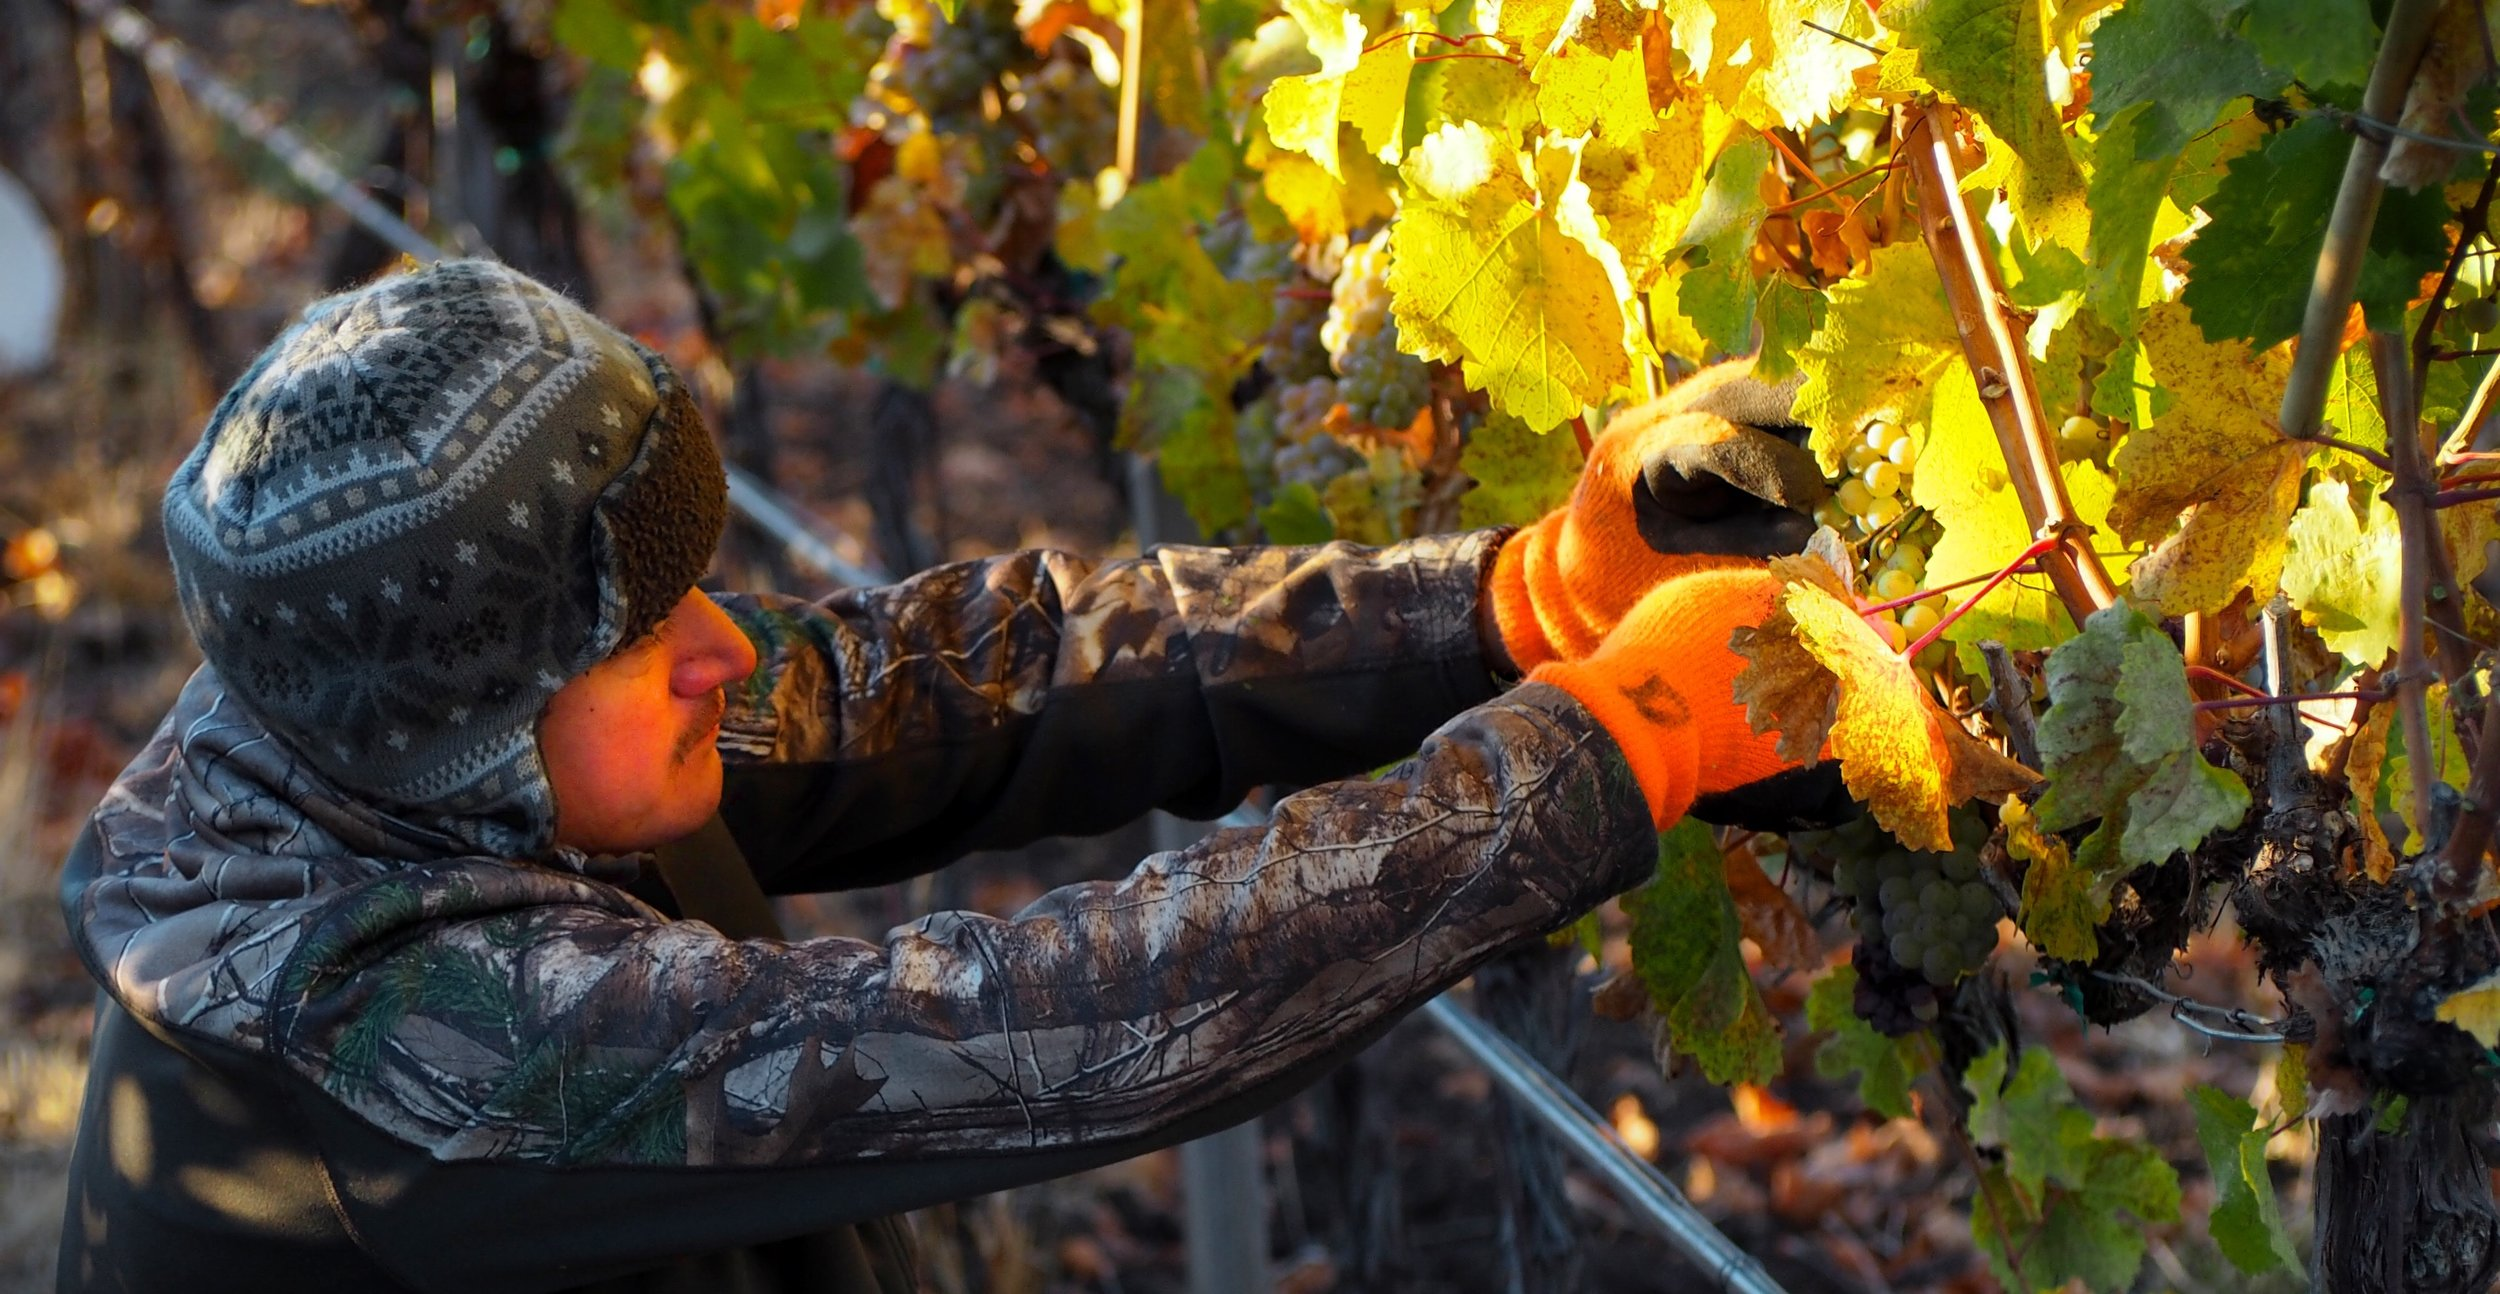 Adan picking vermentino.jpeg